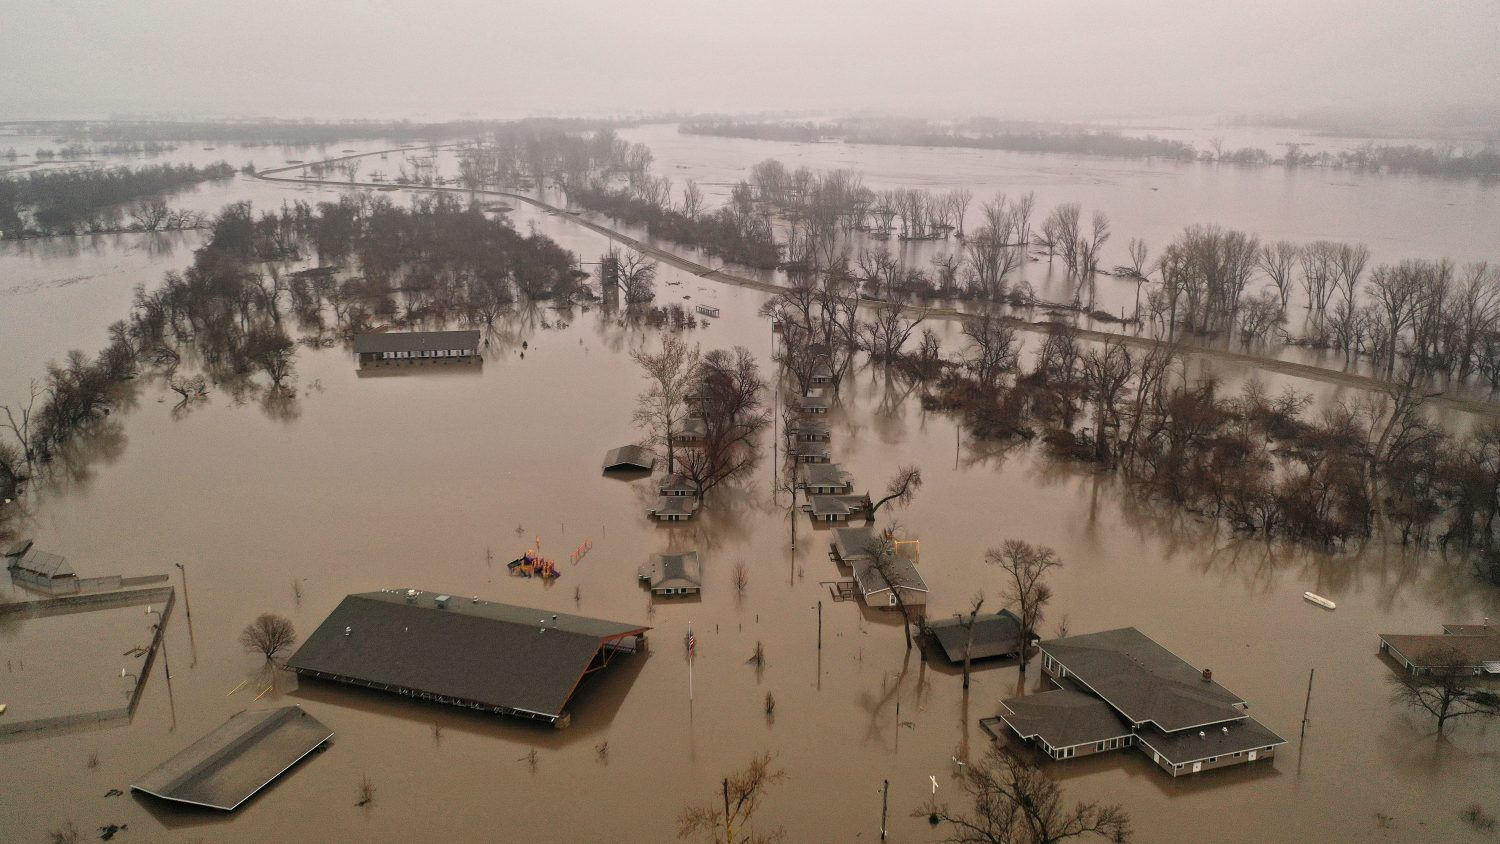 U.S. farmers face devastation following Midwest floods